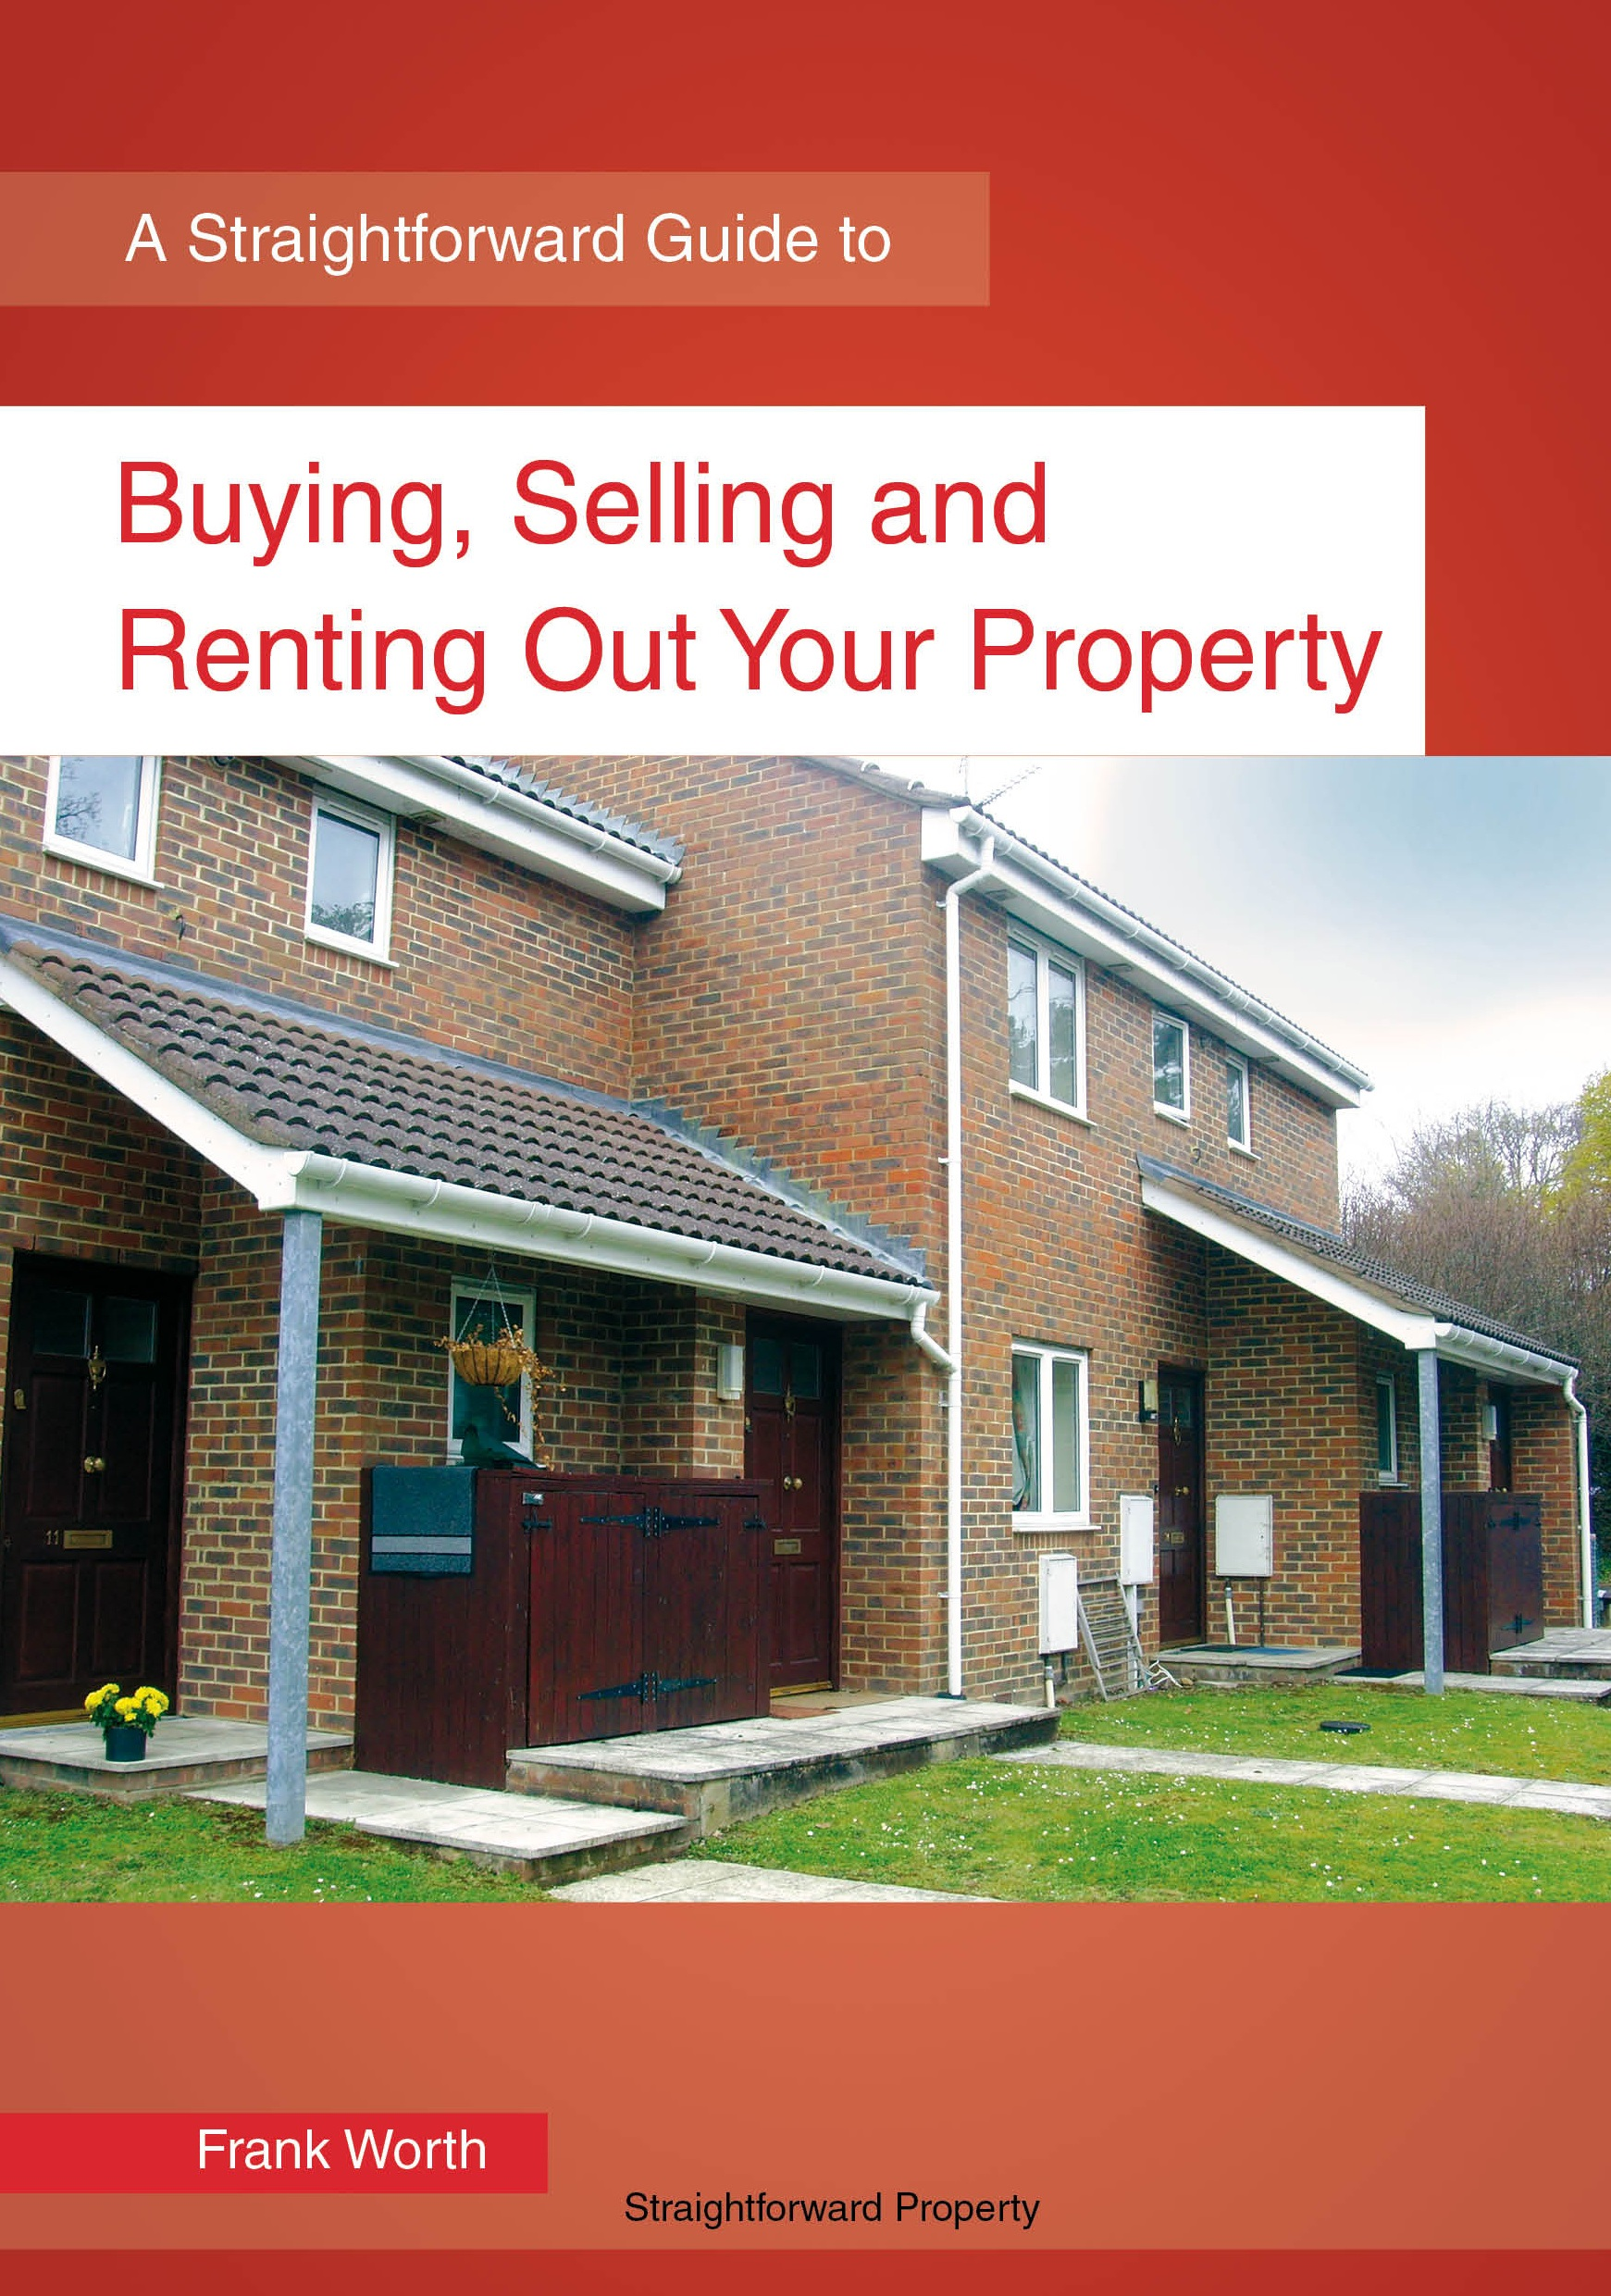 Buying Selling and Renting Property cover